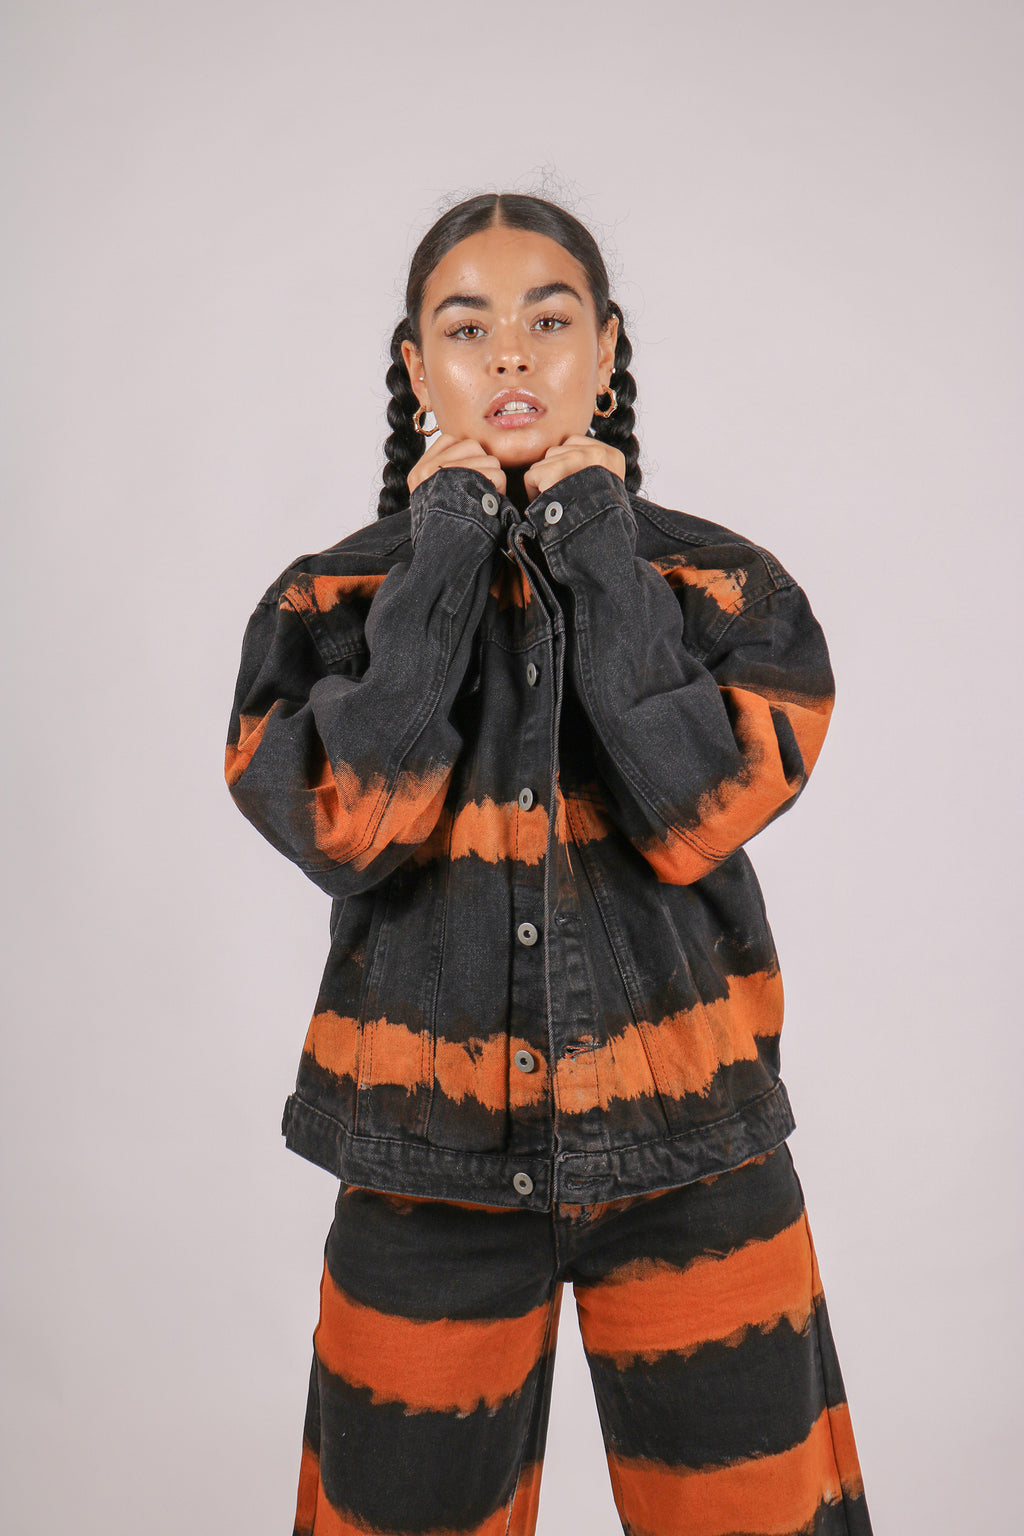 More Room For Activities 'Oversized Jacket In Tie Dye Denim'